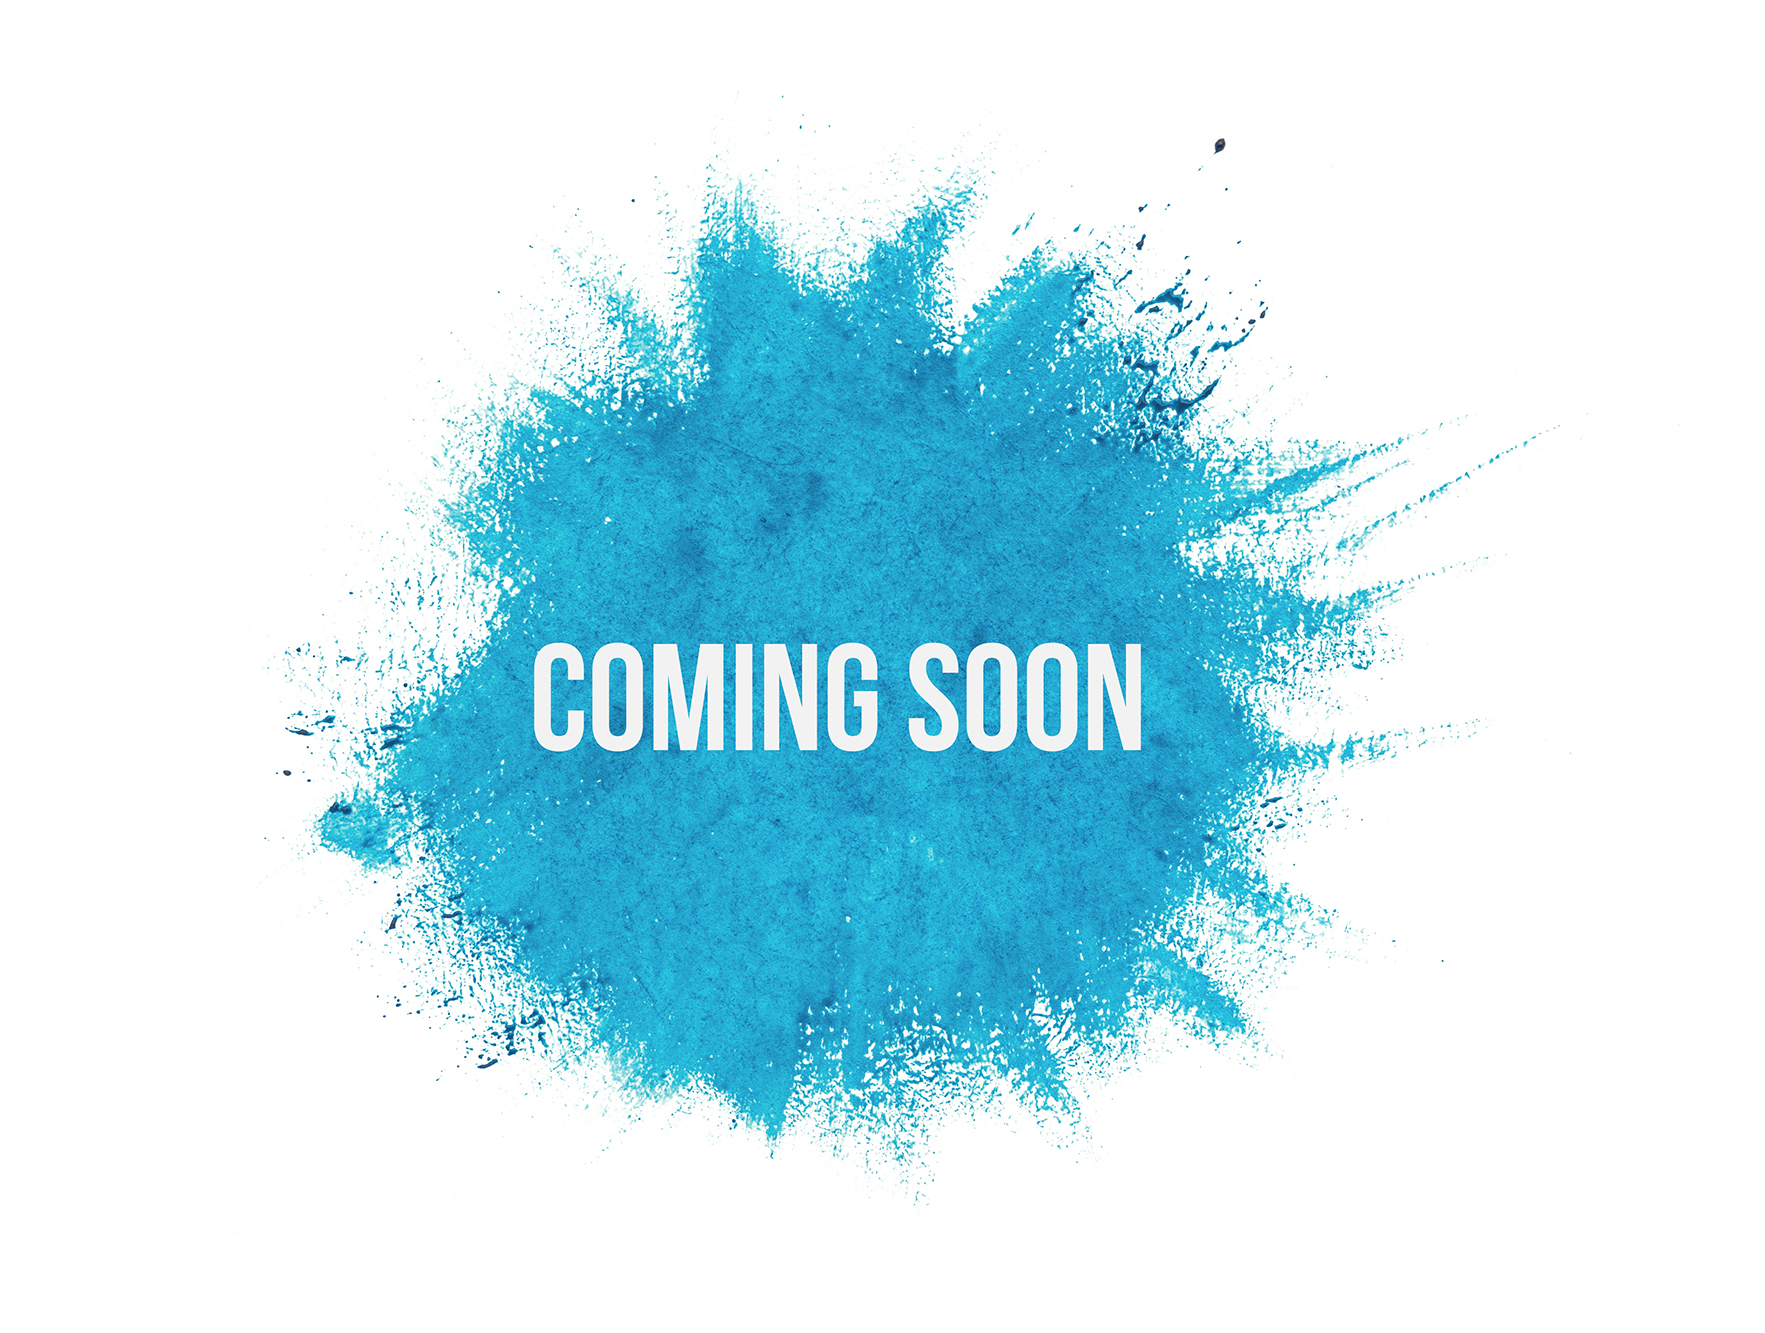 Coming Soon On Blue Paint Background Isolated On White Thinkwell